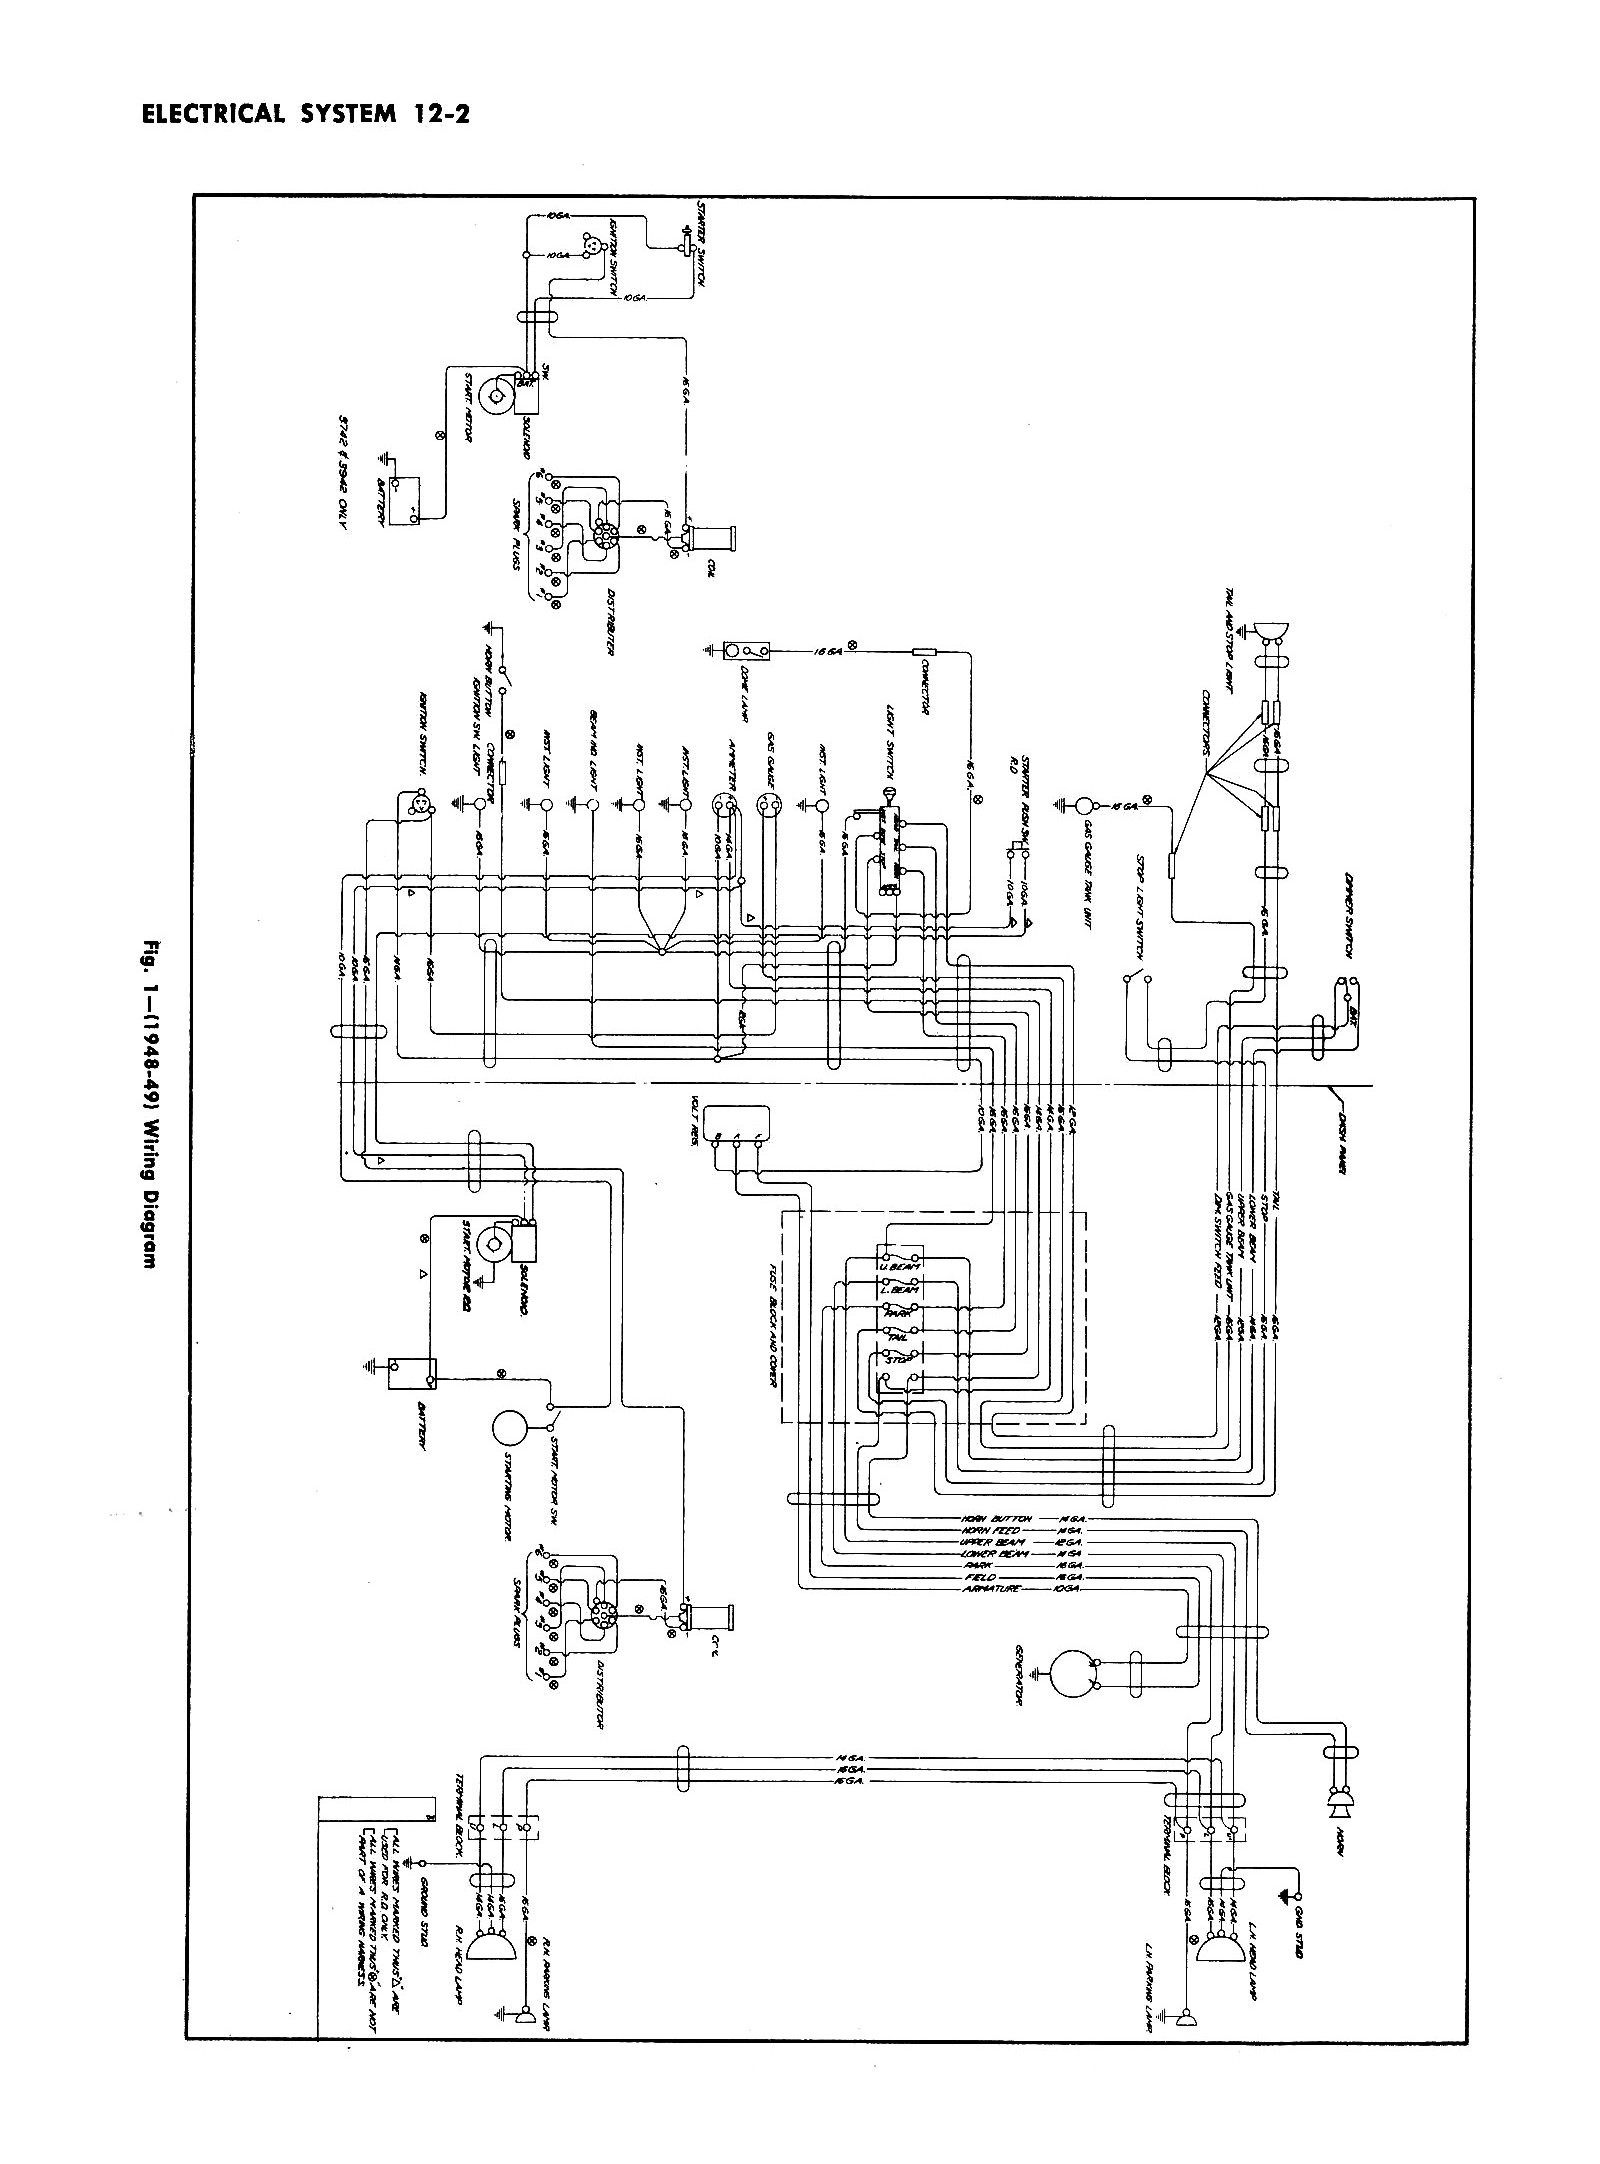 48car chevy wiring diagrams wiring diagram for 1948 ford truck at alyssarenee.co